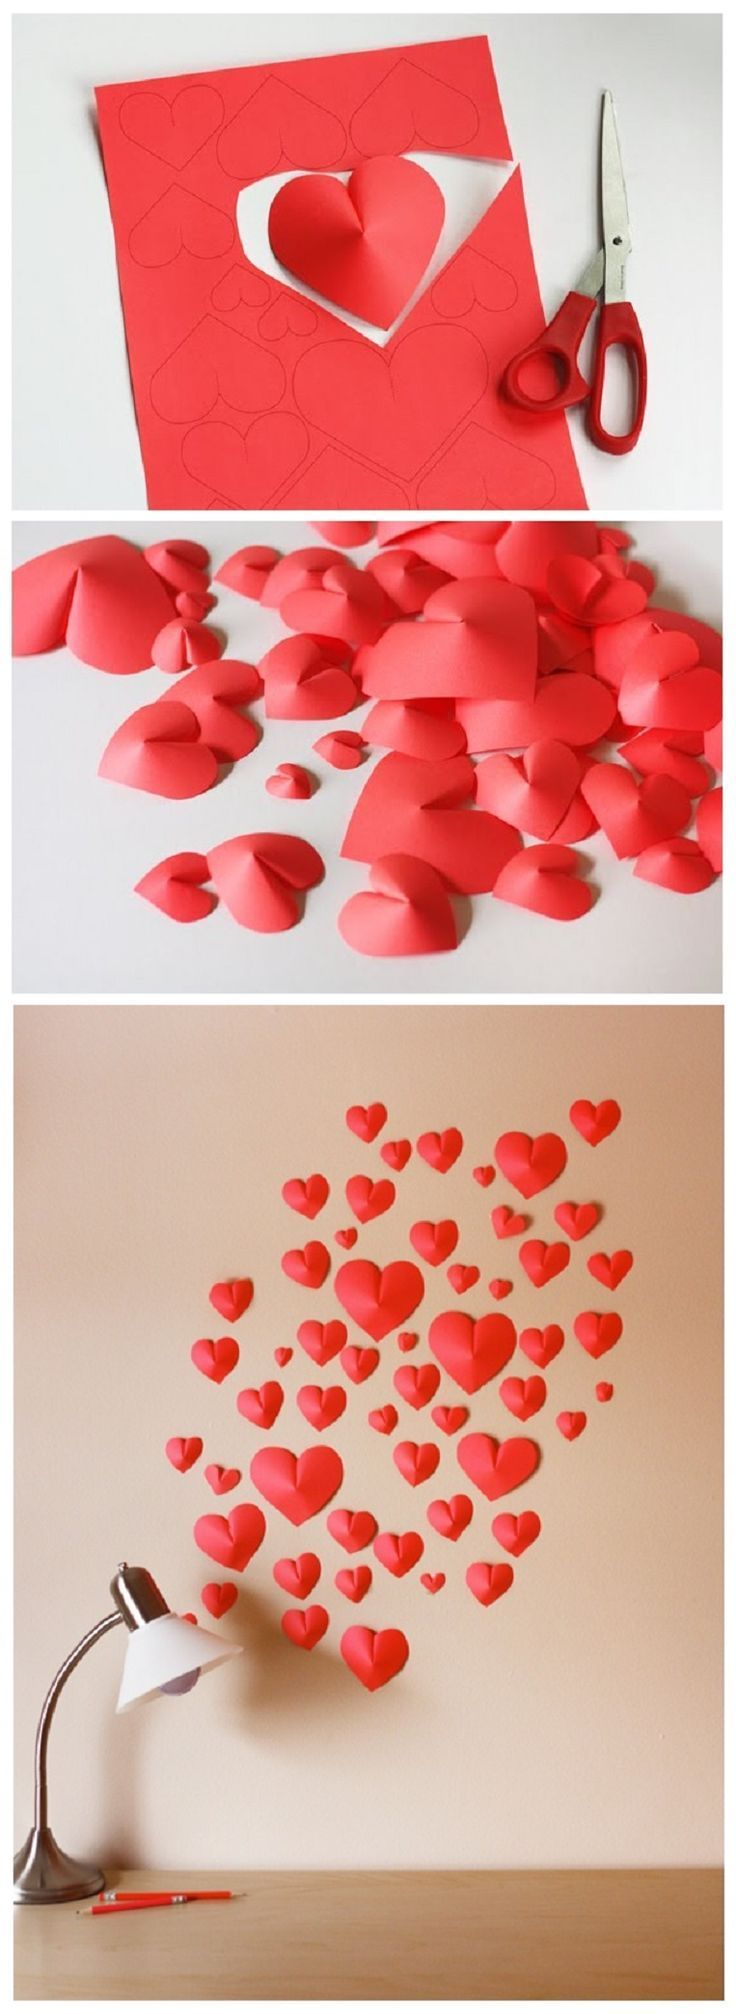 DIY Ideas for Valentines Day | Easy Tutorial for wall of paper hearts is a Cool Quick Craft Idea